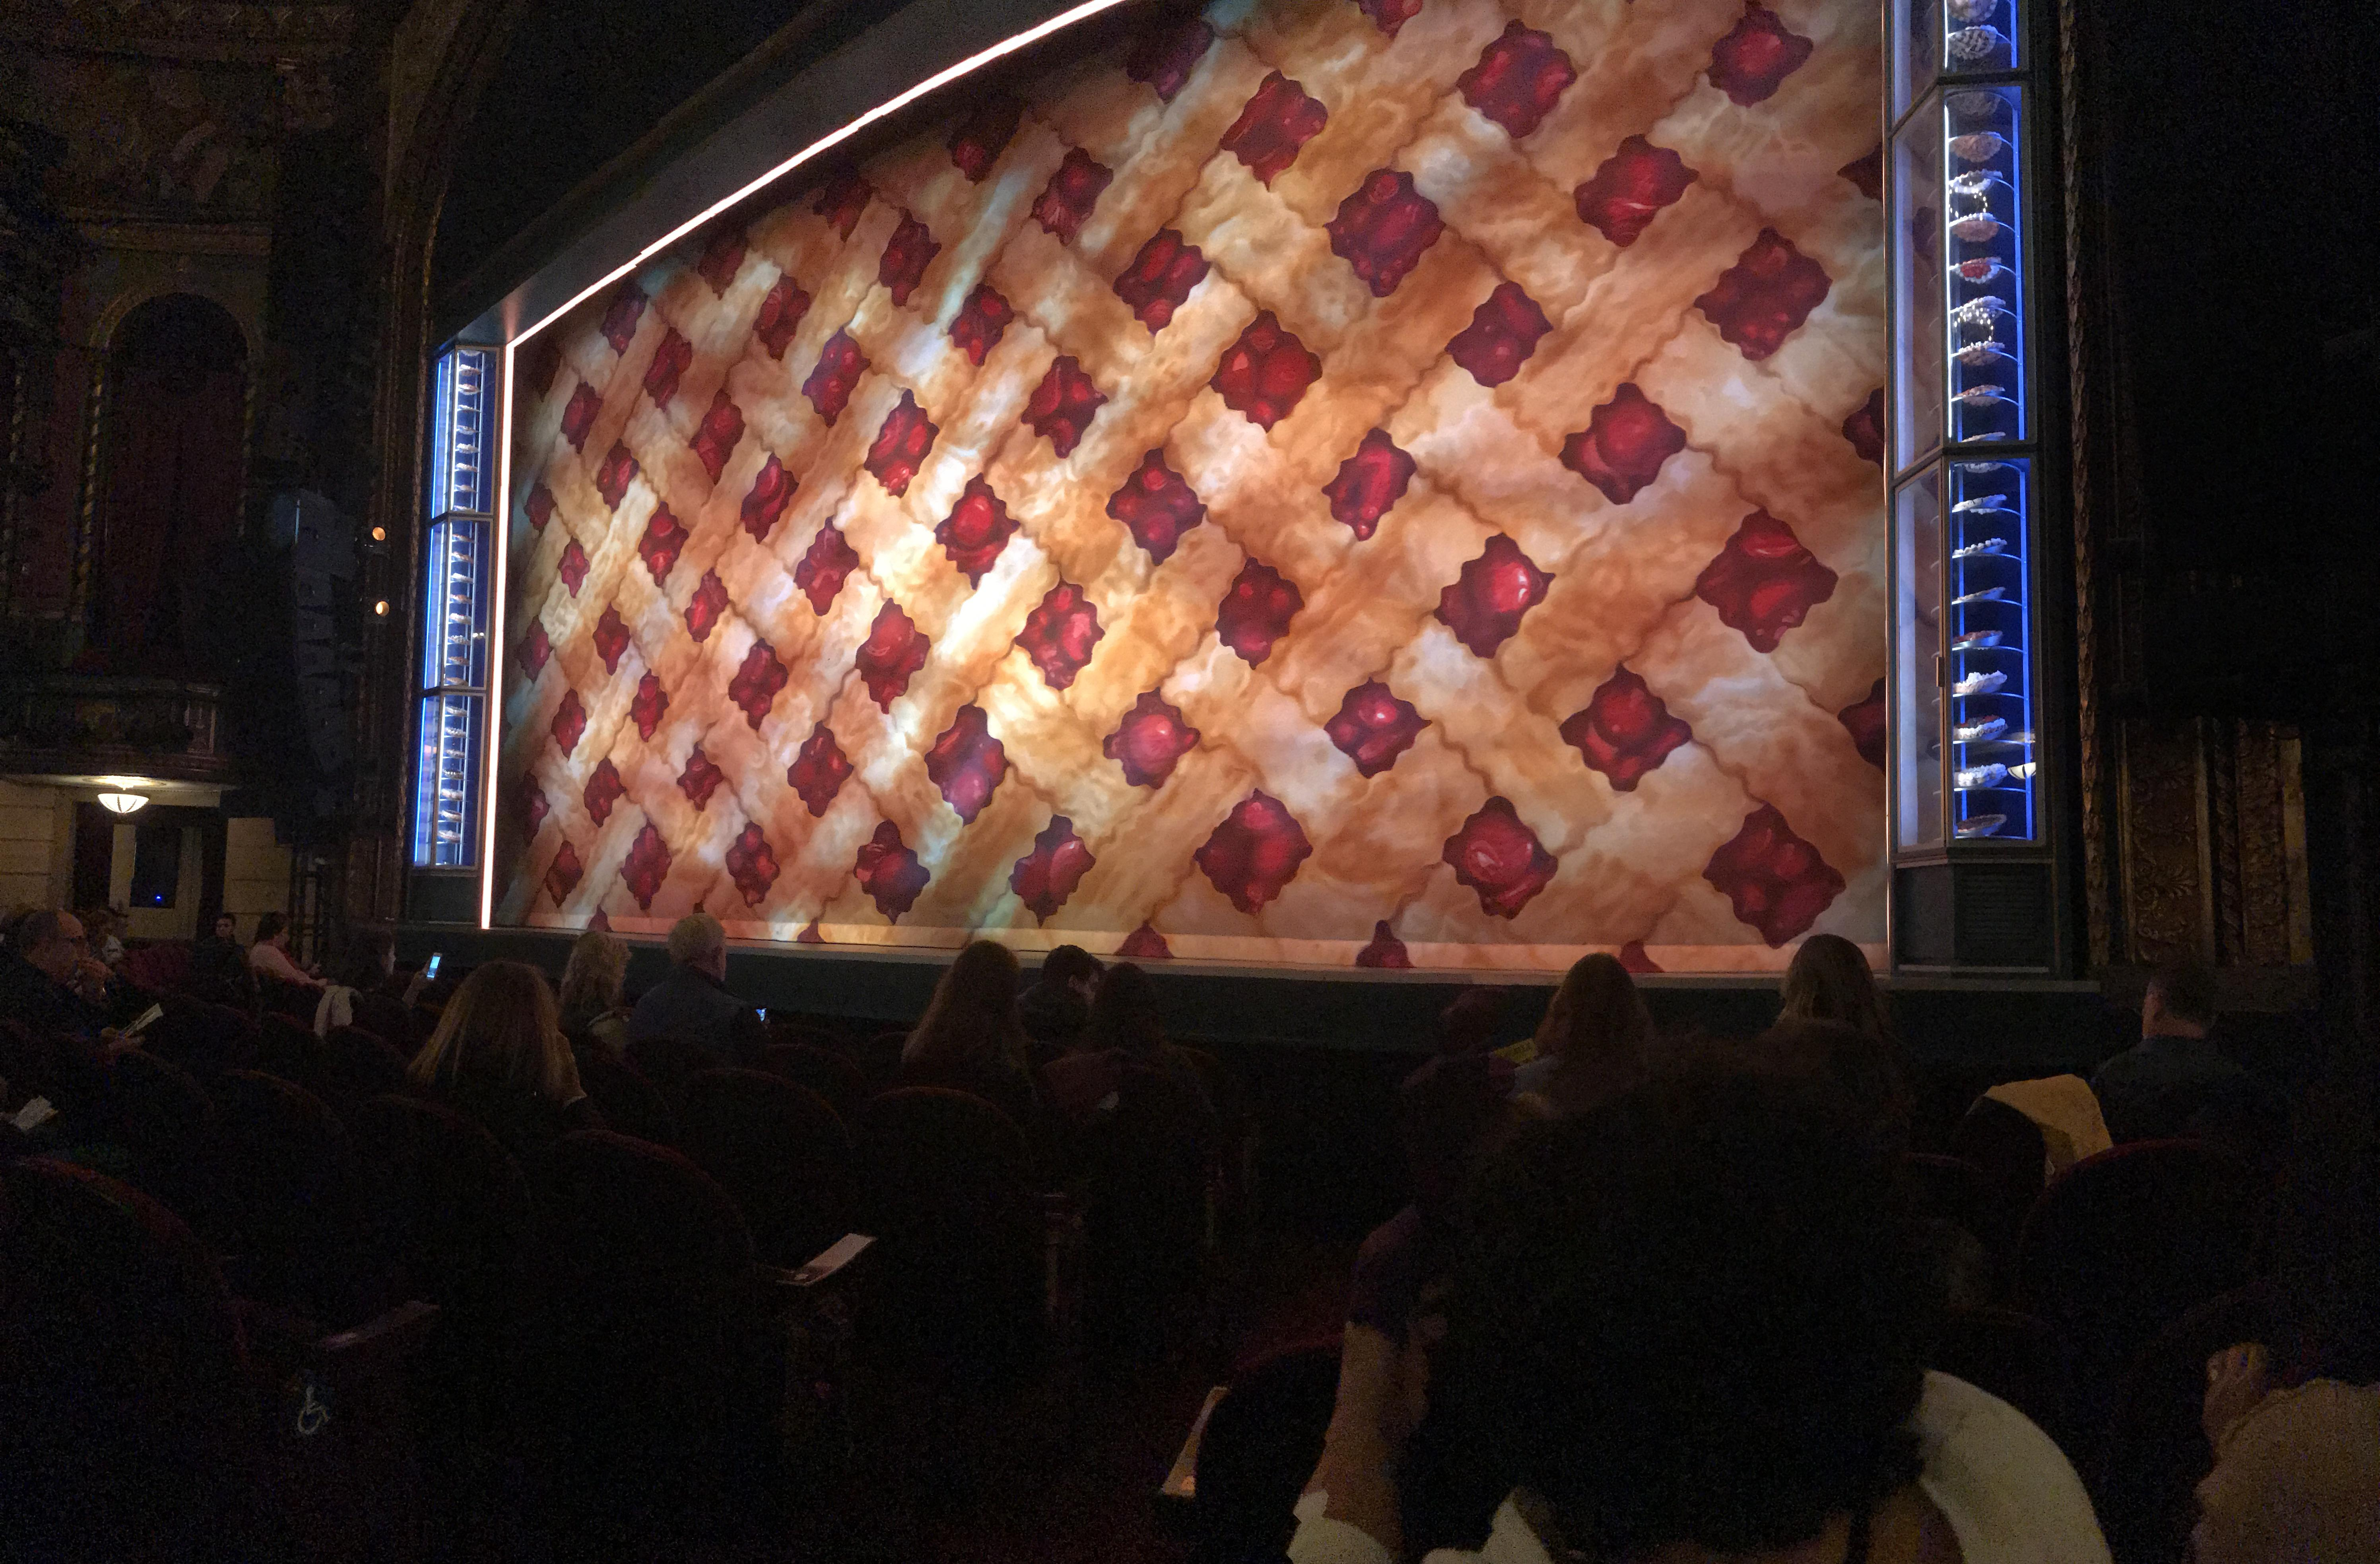 Brooks Atkinson Theatre Section Orchestra R Row D Seat 4